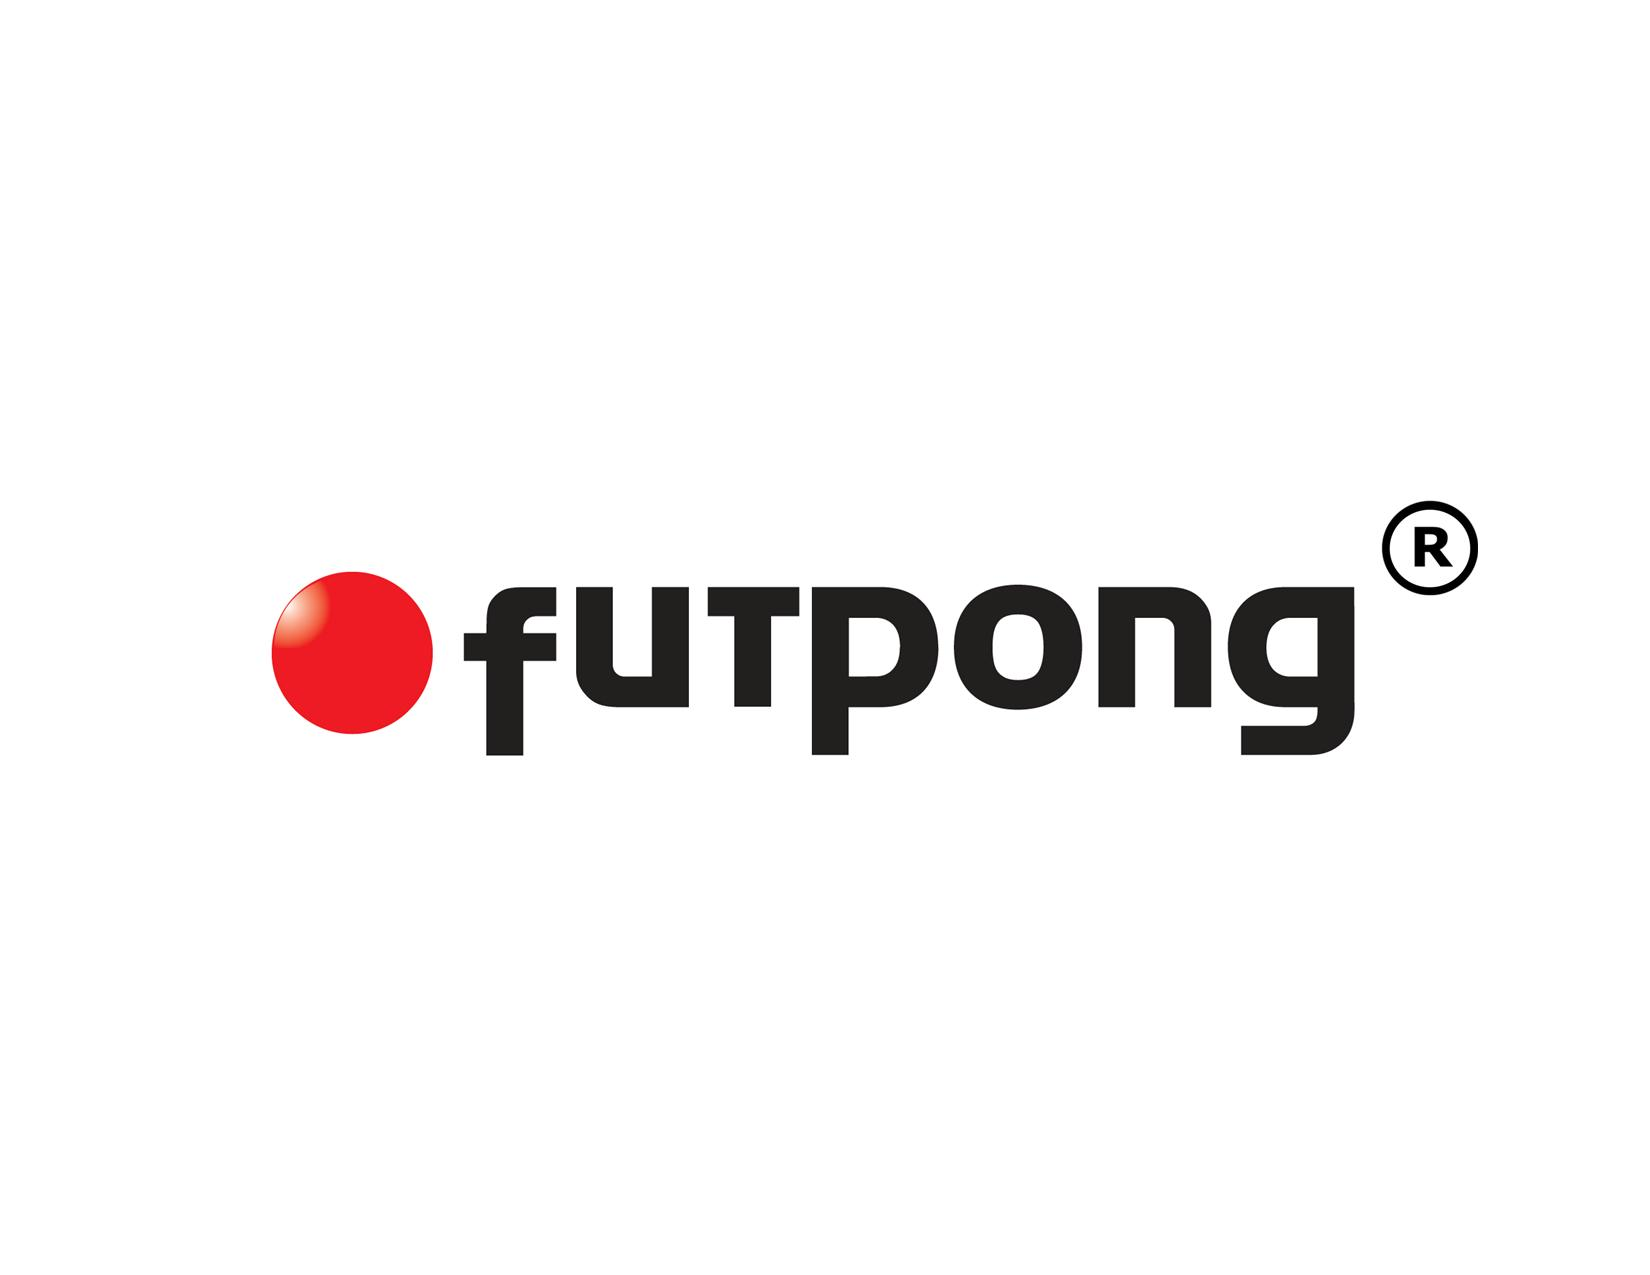 Copy of Futpong_ball_with_circledR.jpg